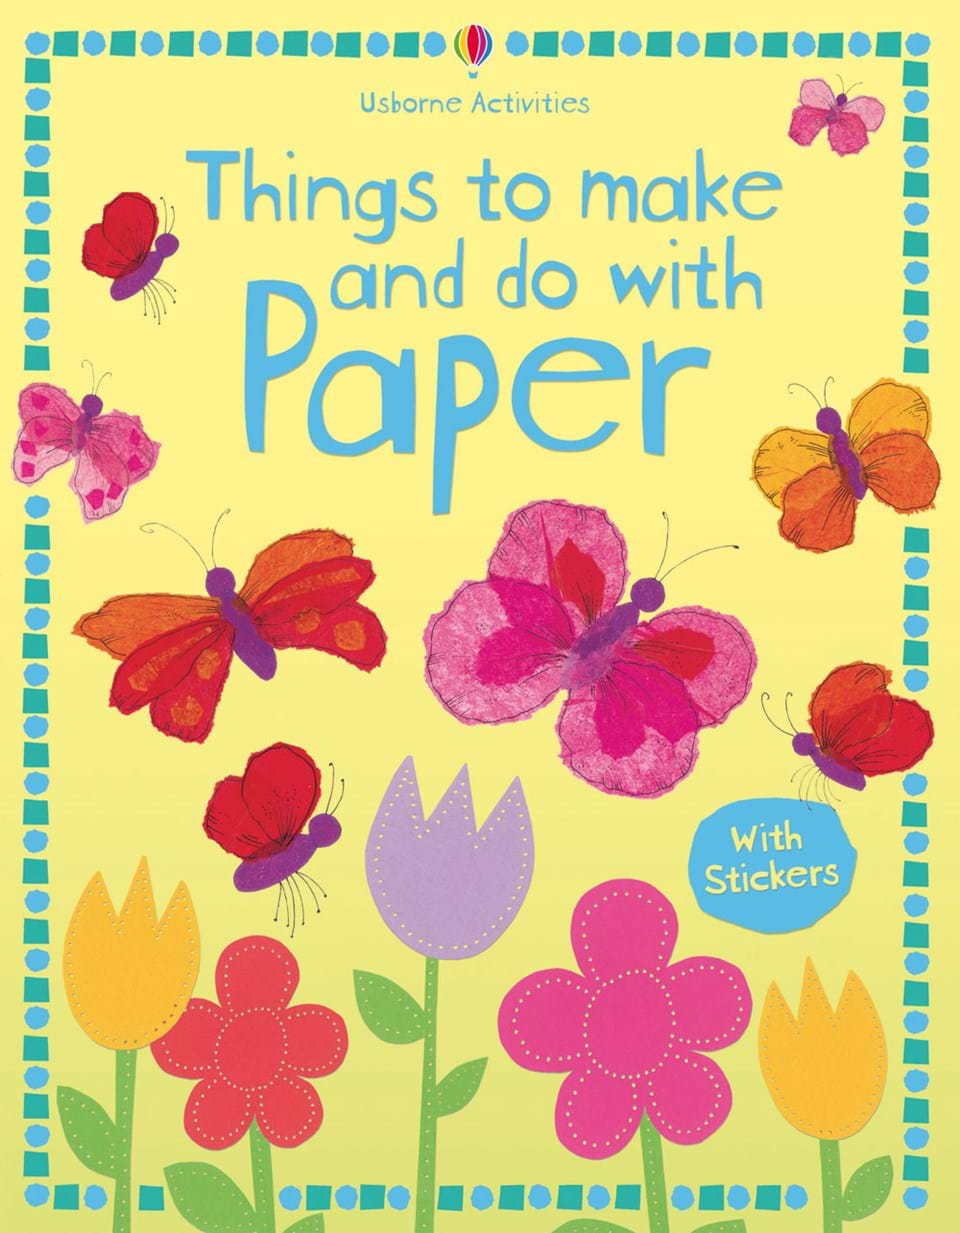 things to make and do with paper at usborne books at home